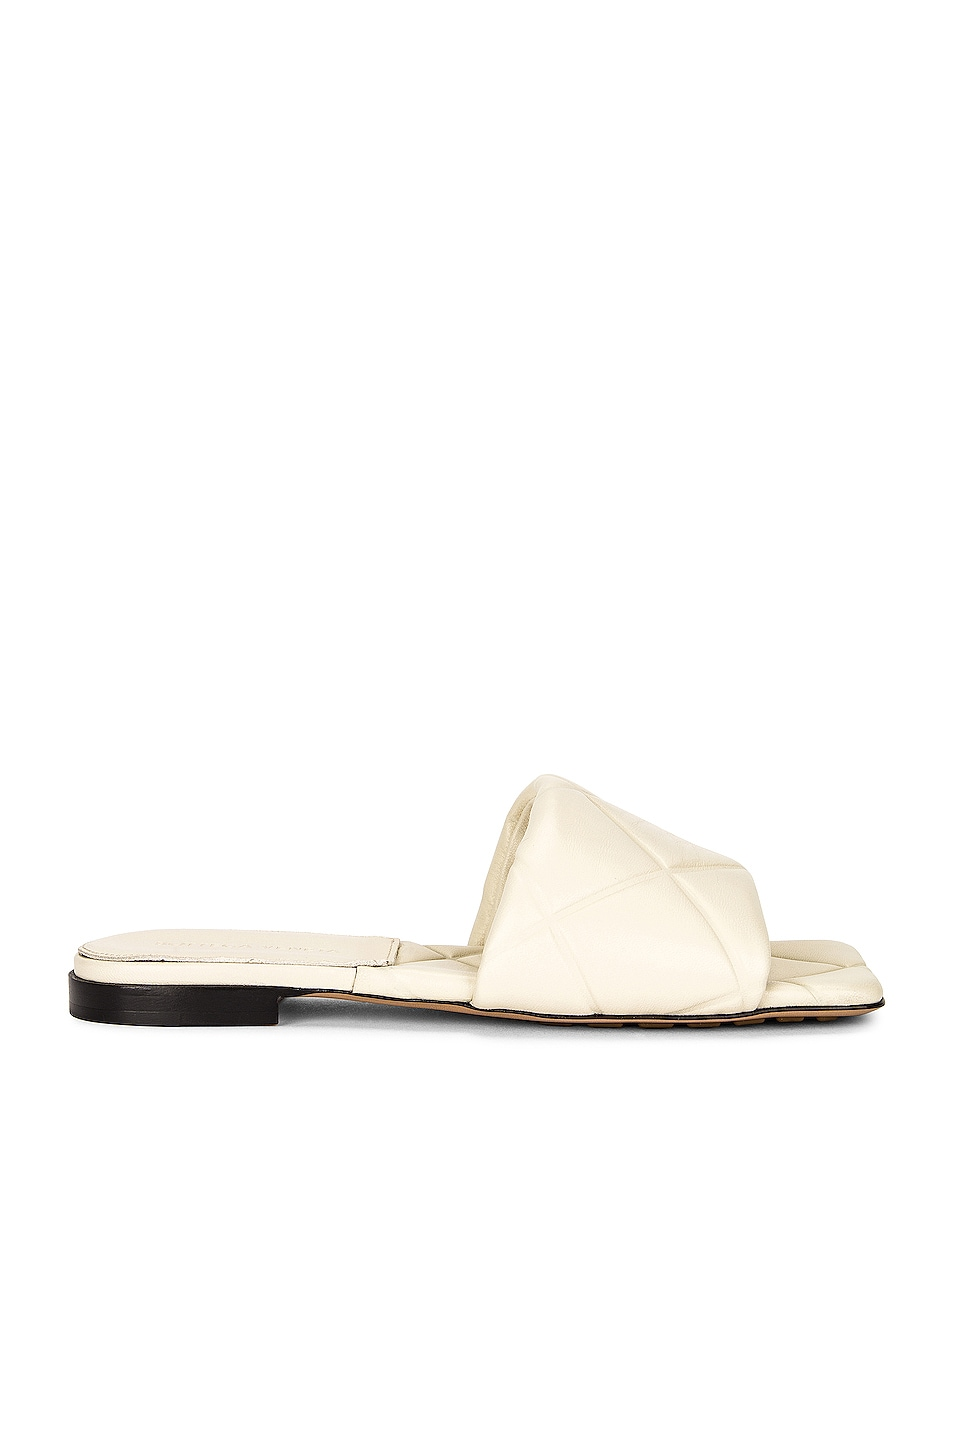 Image 1 of Bottega Veneta BV Rubber Lido Sandals in Wax